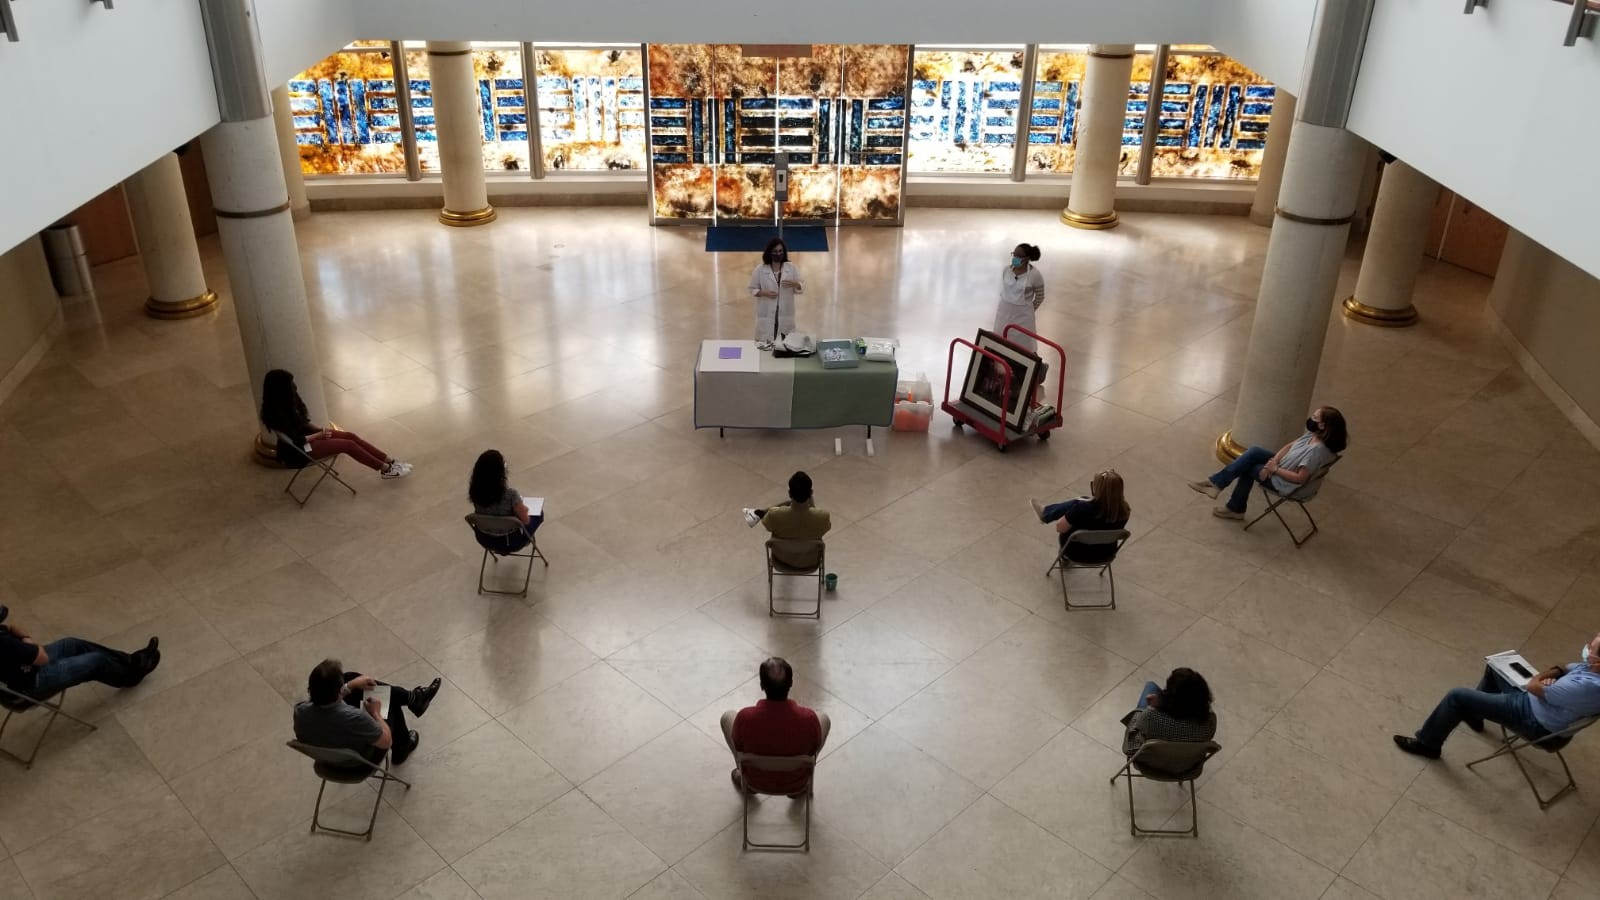 Aerial view of people sitting spaced out and wearing masks in a museum setting